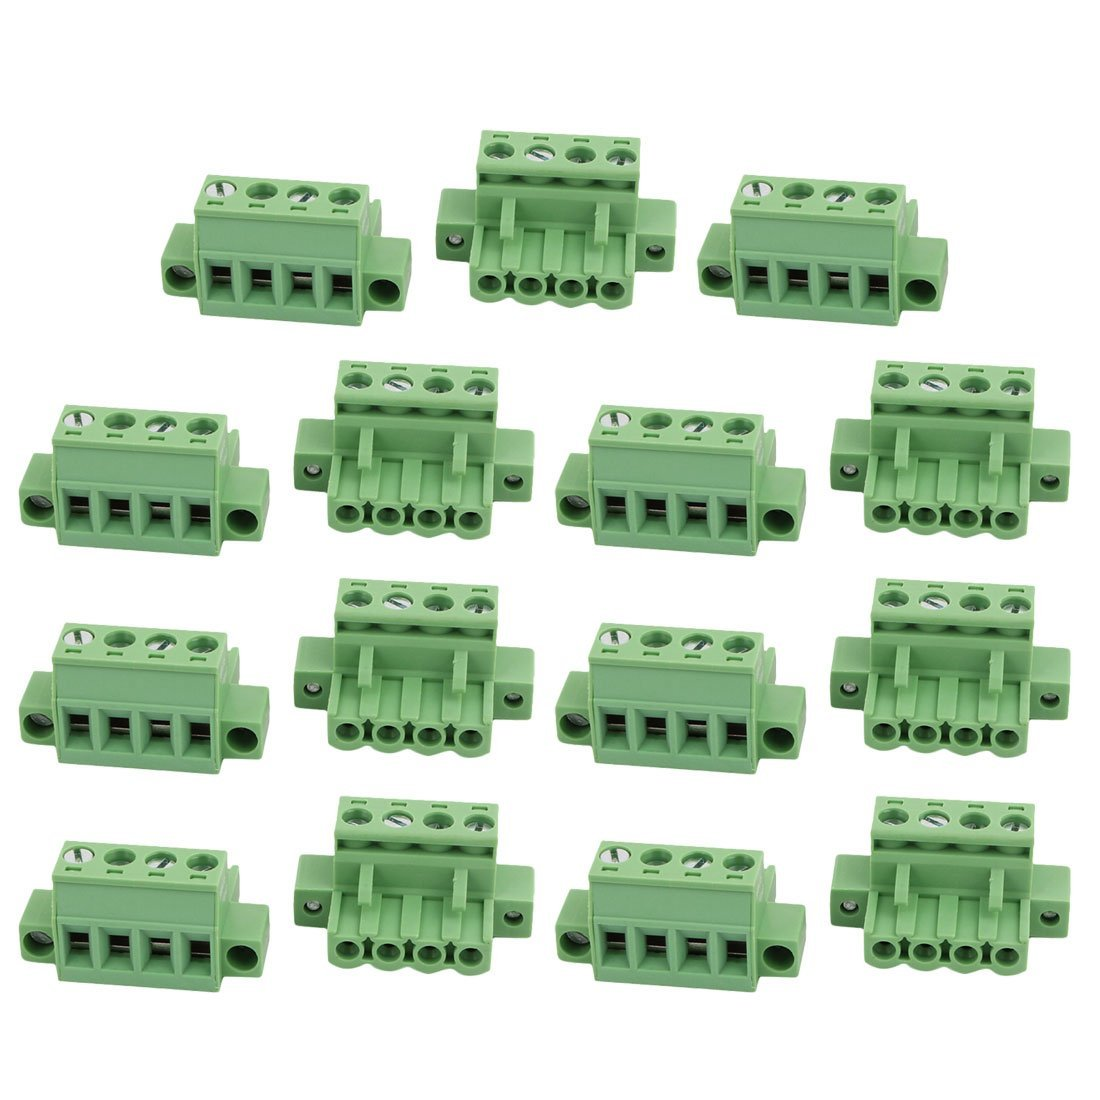 uxcell 15Pcs LC1M AC300V 15A 5.0mm Pitch 4P PCB Terminal Block Wire Connection